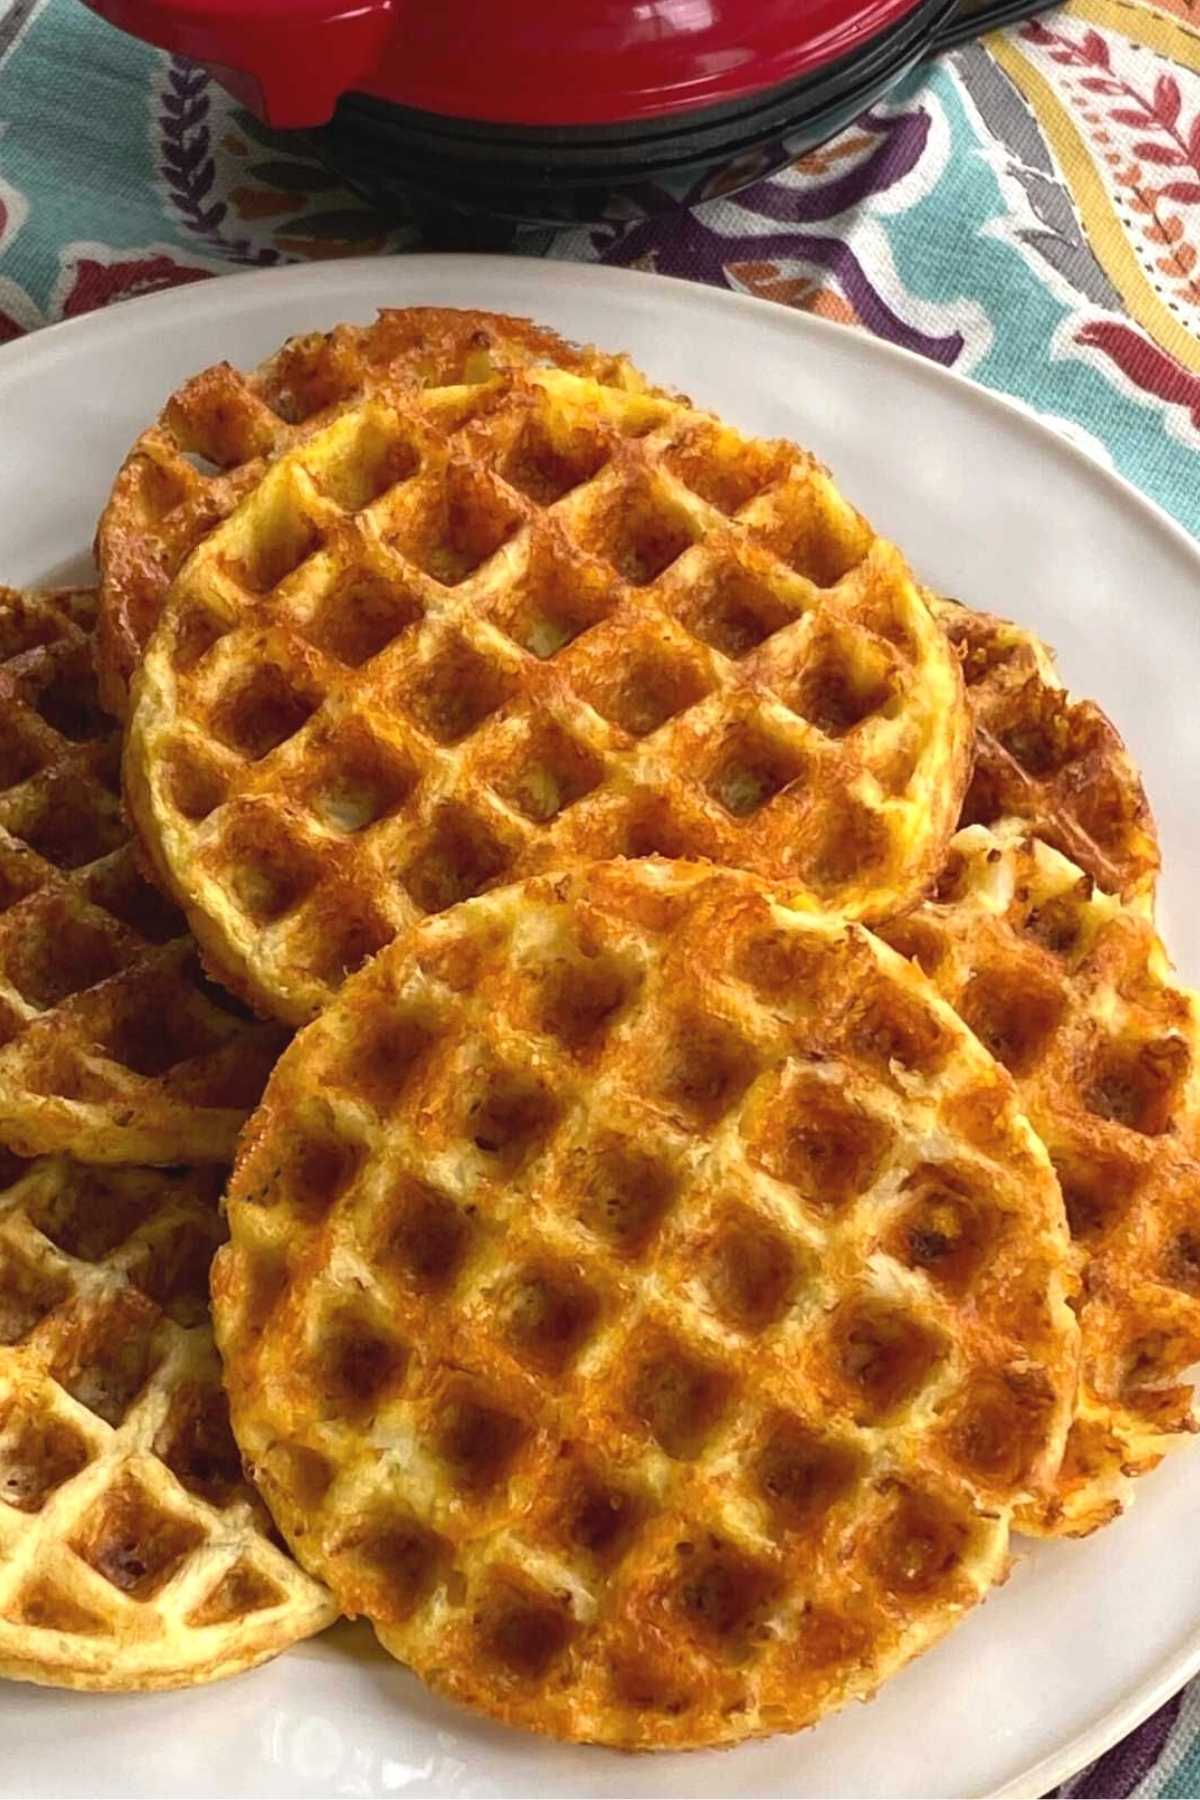 Cauliflower chaffles scattered on plate with Dash waffle iron behind it.